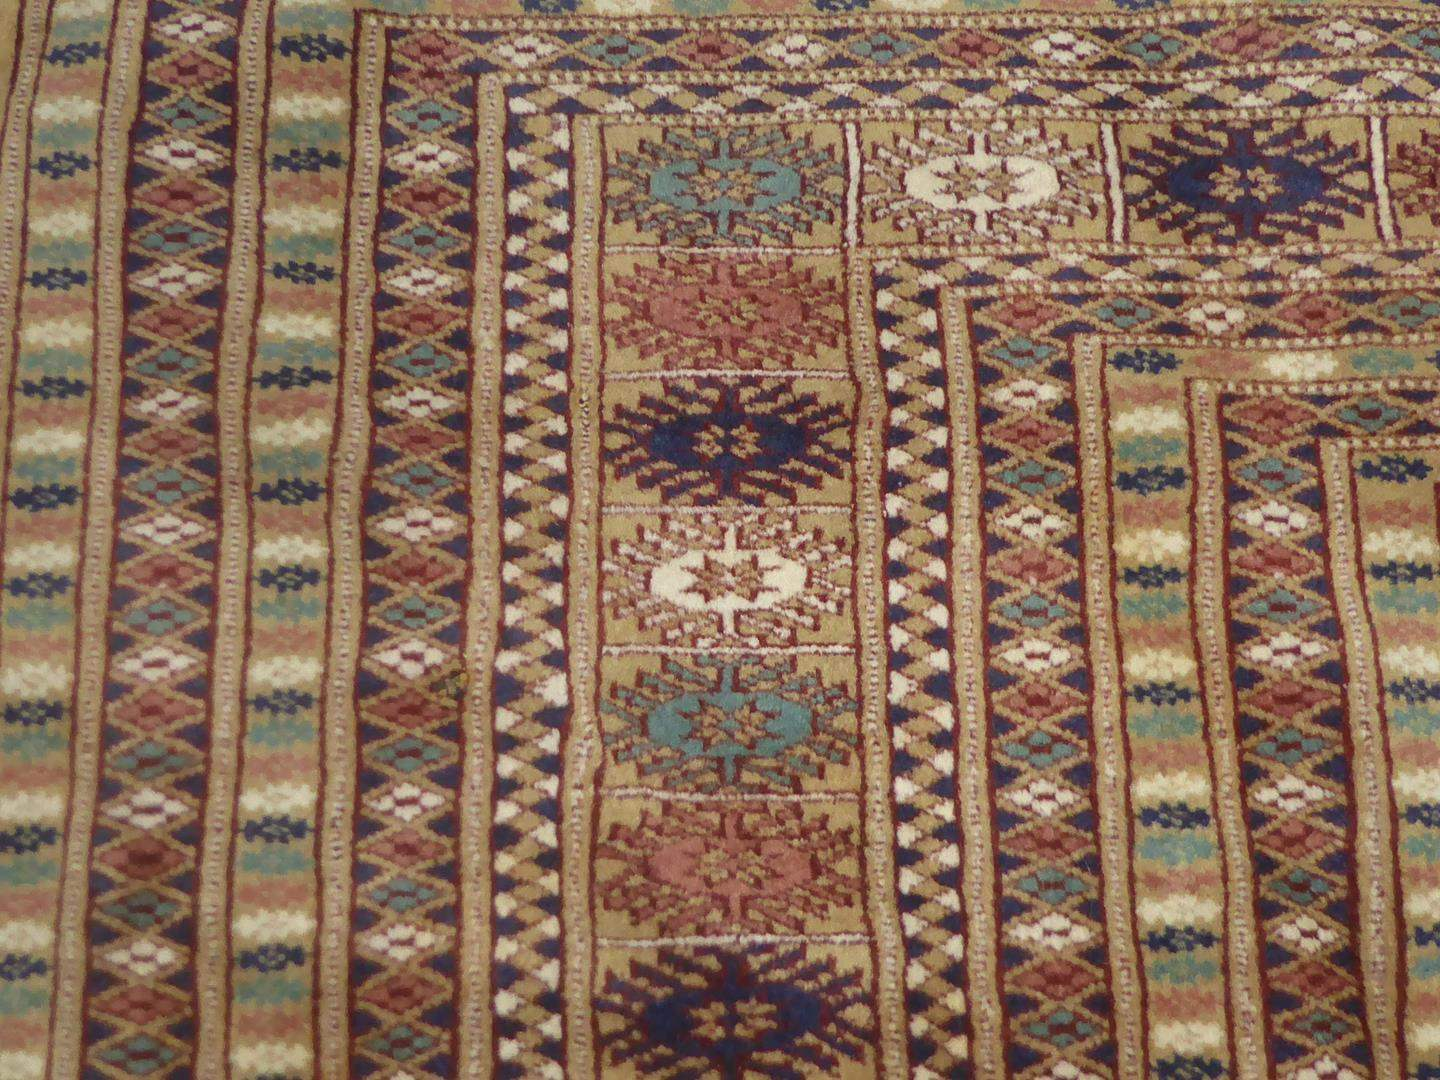 Lot # 224 - Large Vintage Genuine Bokhara Hand Woven Wool Oriental Rug Very High Quality  (main image)